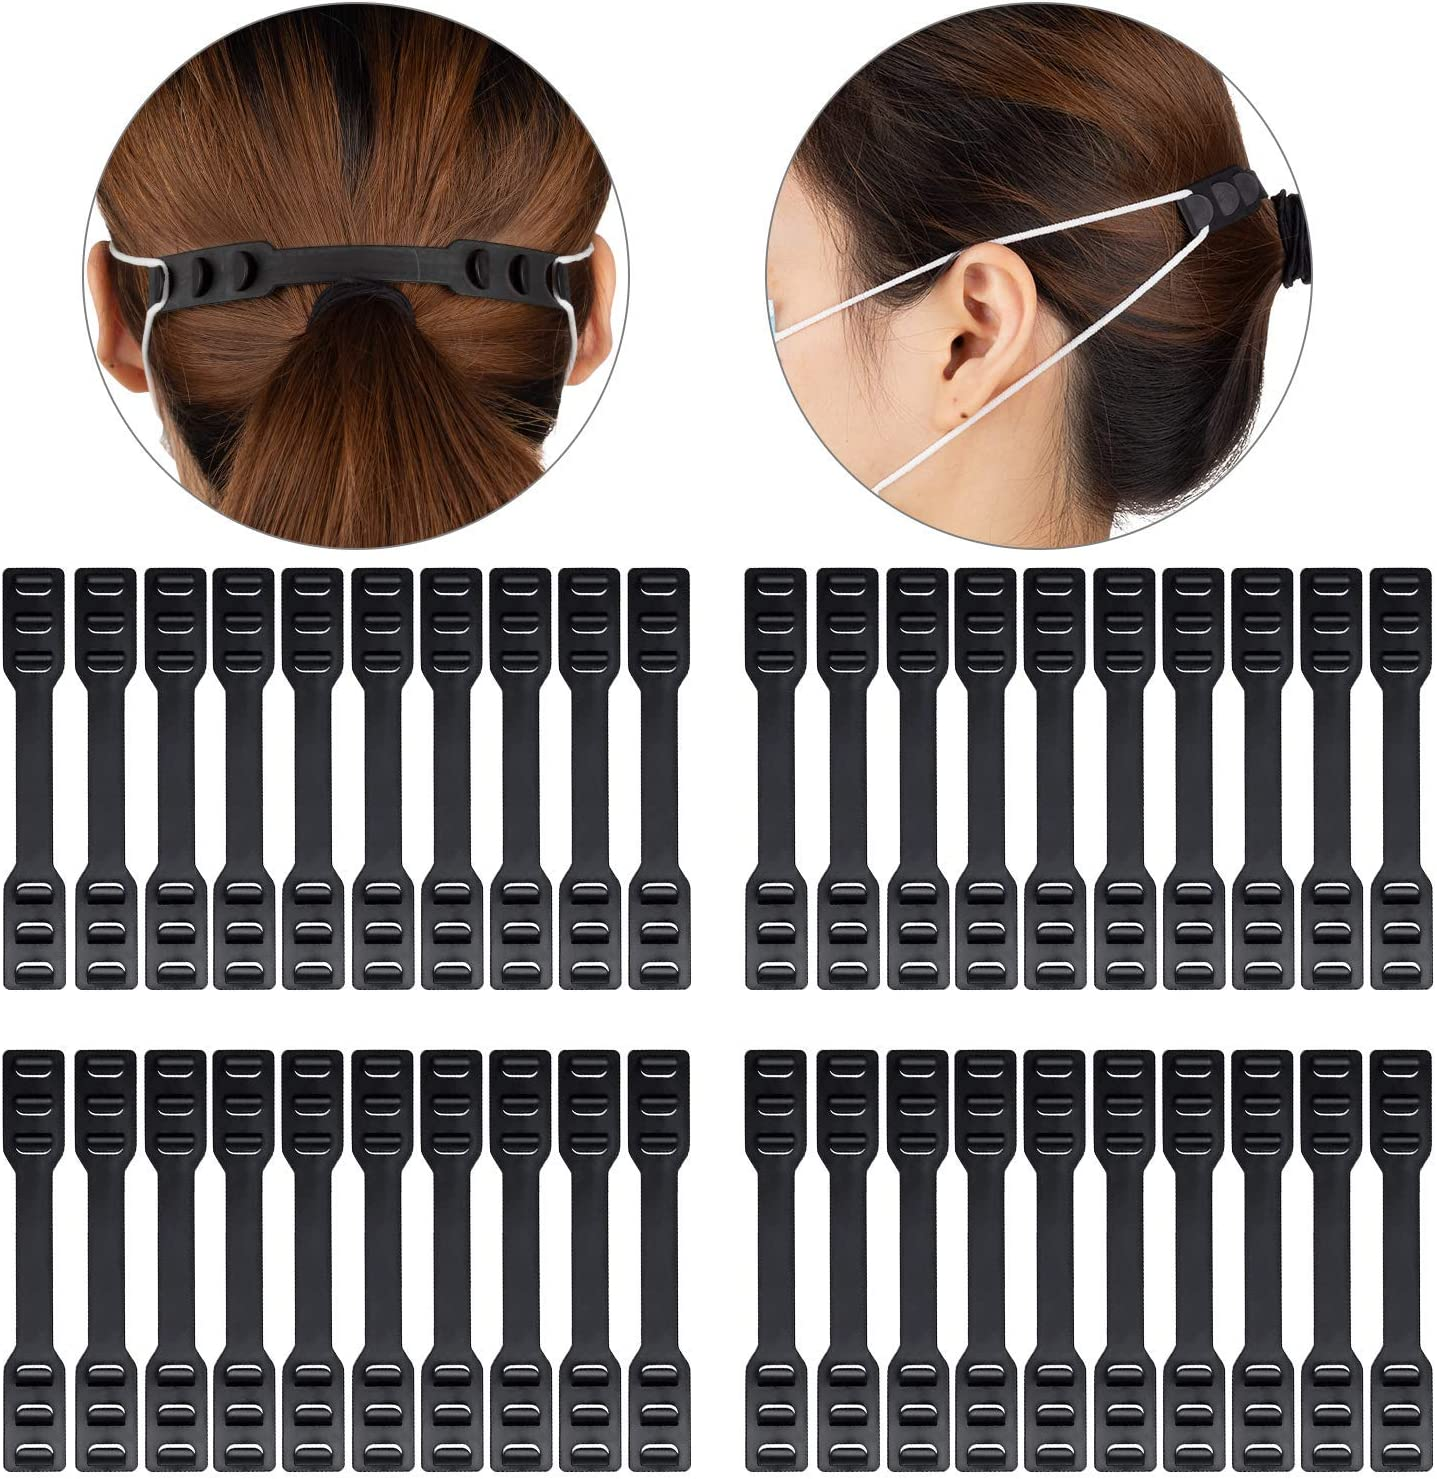 Arbnic Ear Strap Extenders, Anti-Tightening Ear Hooks, Relieve Pain for Your Ears